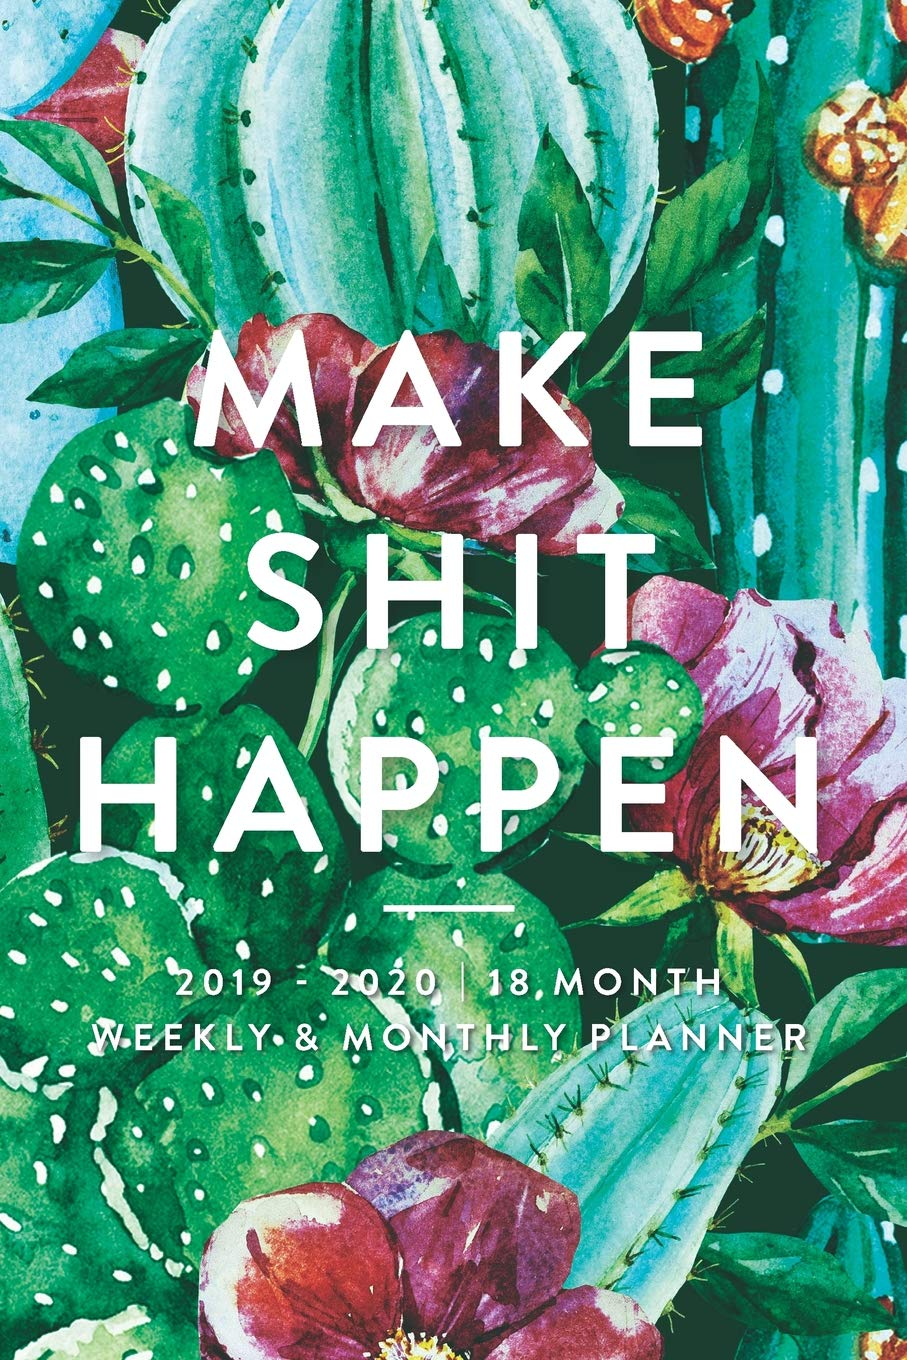 Amazon.com: Make Shit Happen, 2019 - 2020 | 18 Month Weekly ...